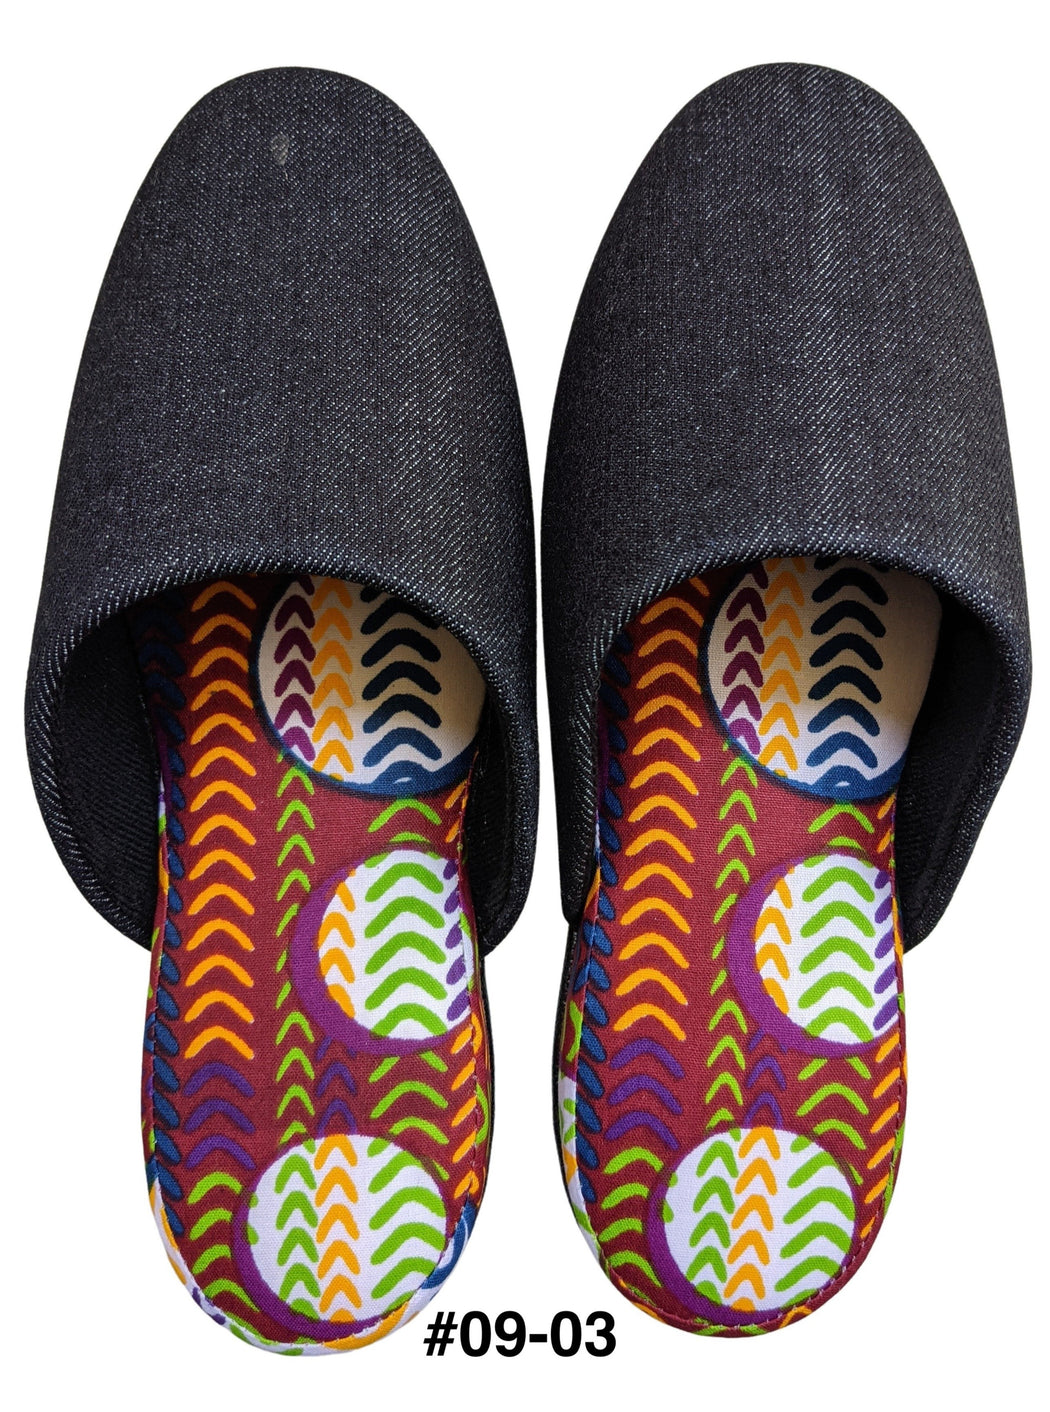 Small : Denim Mix Slippers 2021SS-09 [vinyl sole] [Size: Small]